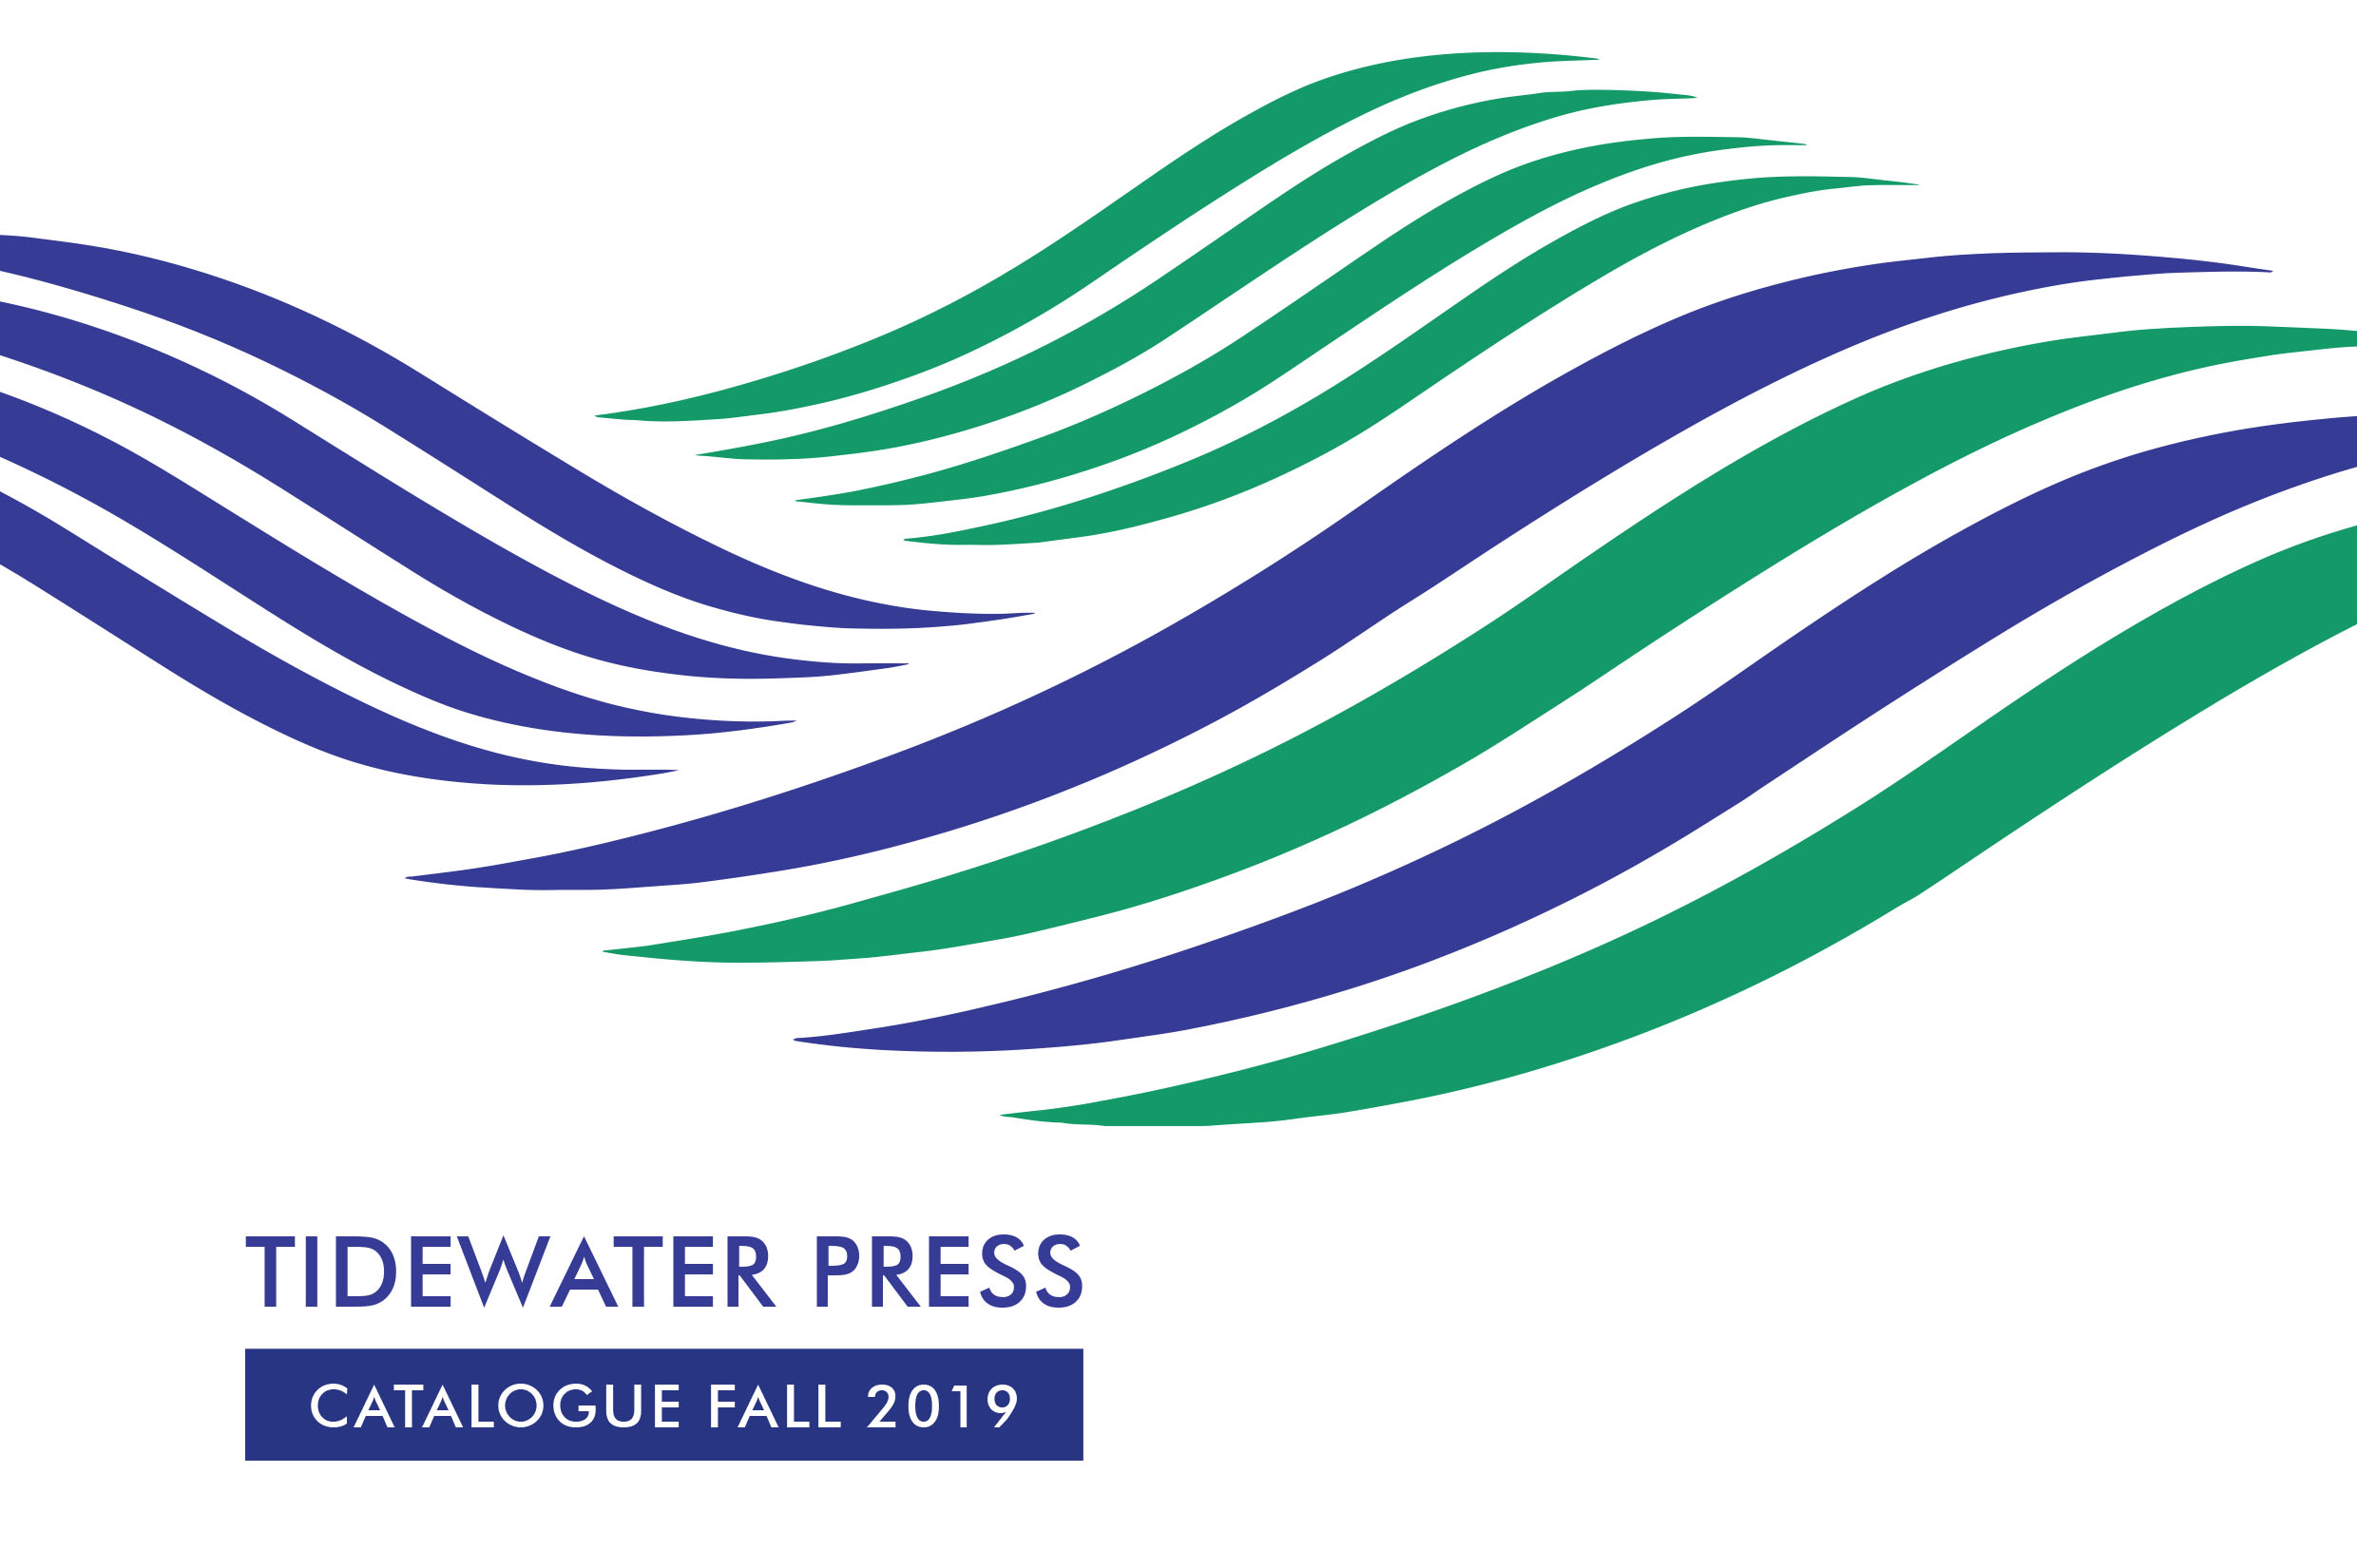 Fall 2019 Catalogue Tidewater Press